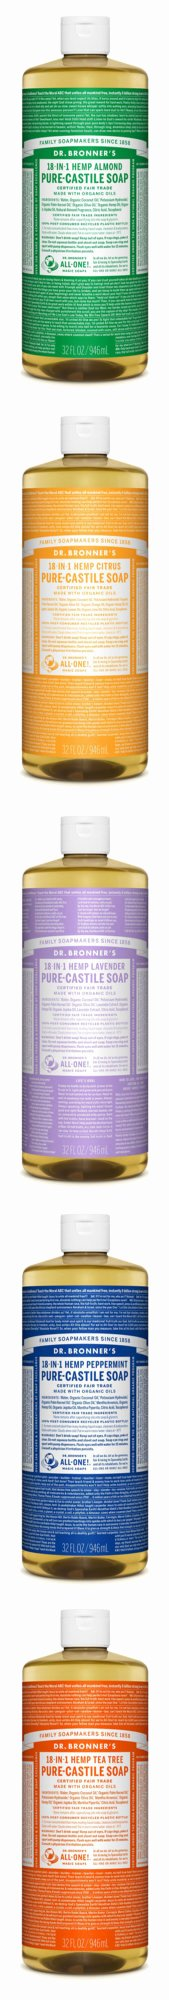 Vitamin Water Cheat Sheet Best Of Dilutions Cheat Sheet for Dr Bronner S Pure Castile soap